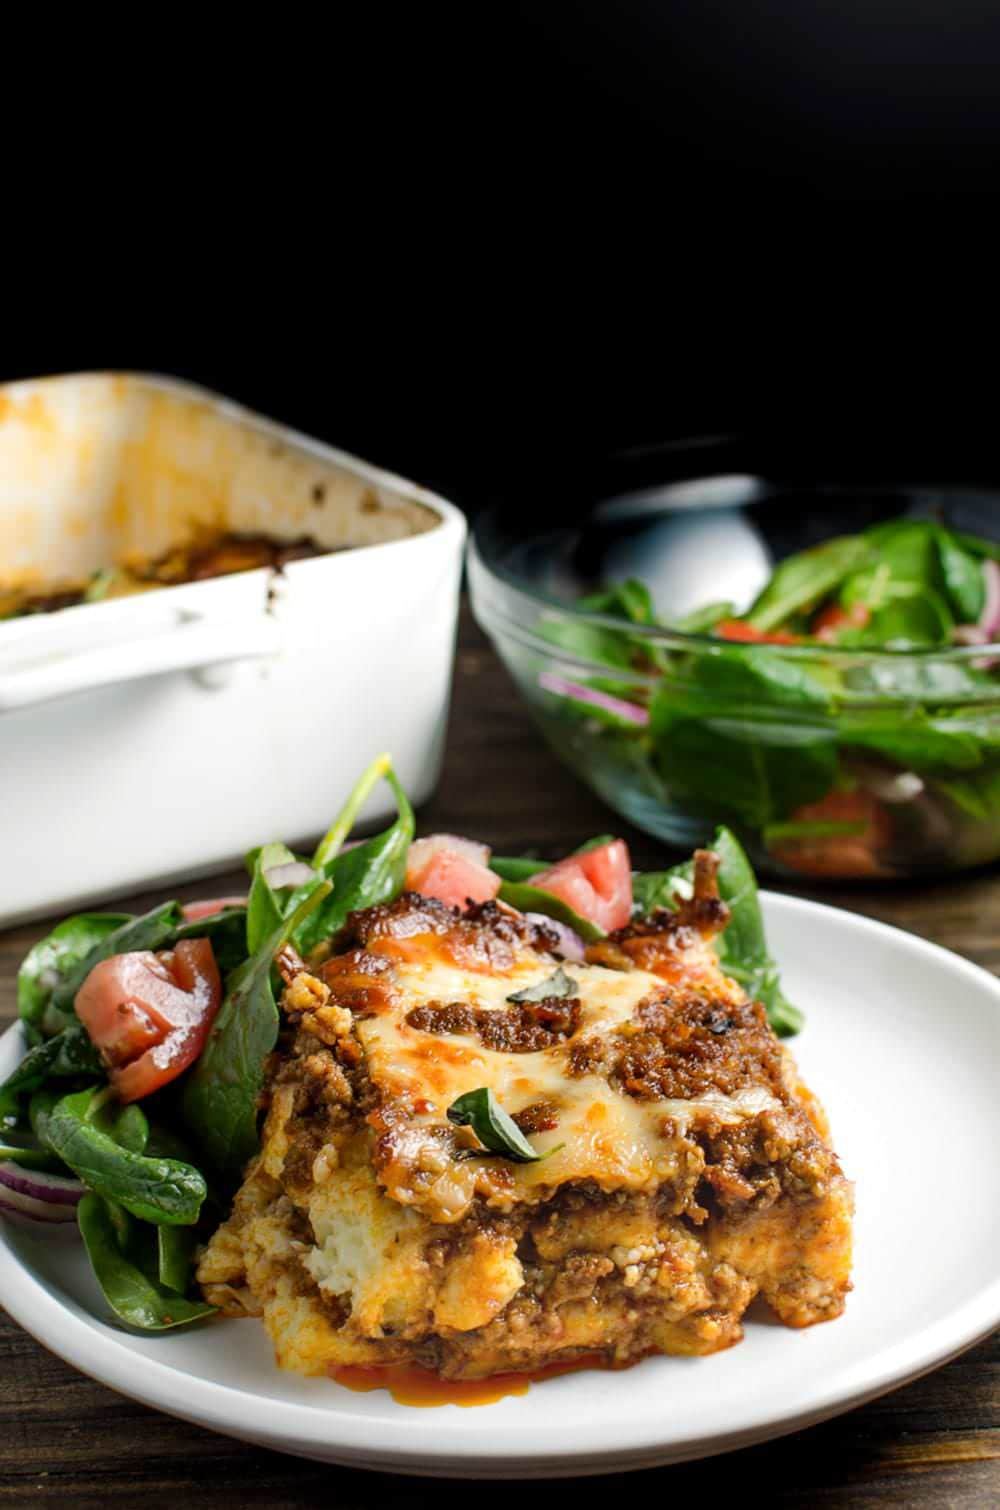 Polenta Lasagna Bolognese - This gluten free, delicious family recipe will become a favourite in your family too! Made with alot of love and #simmeredintradition